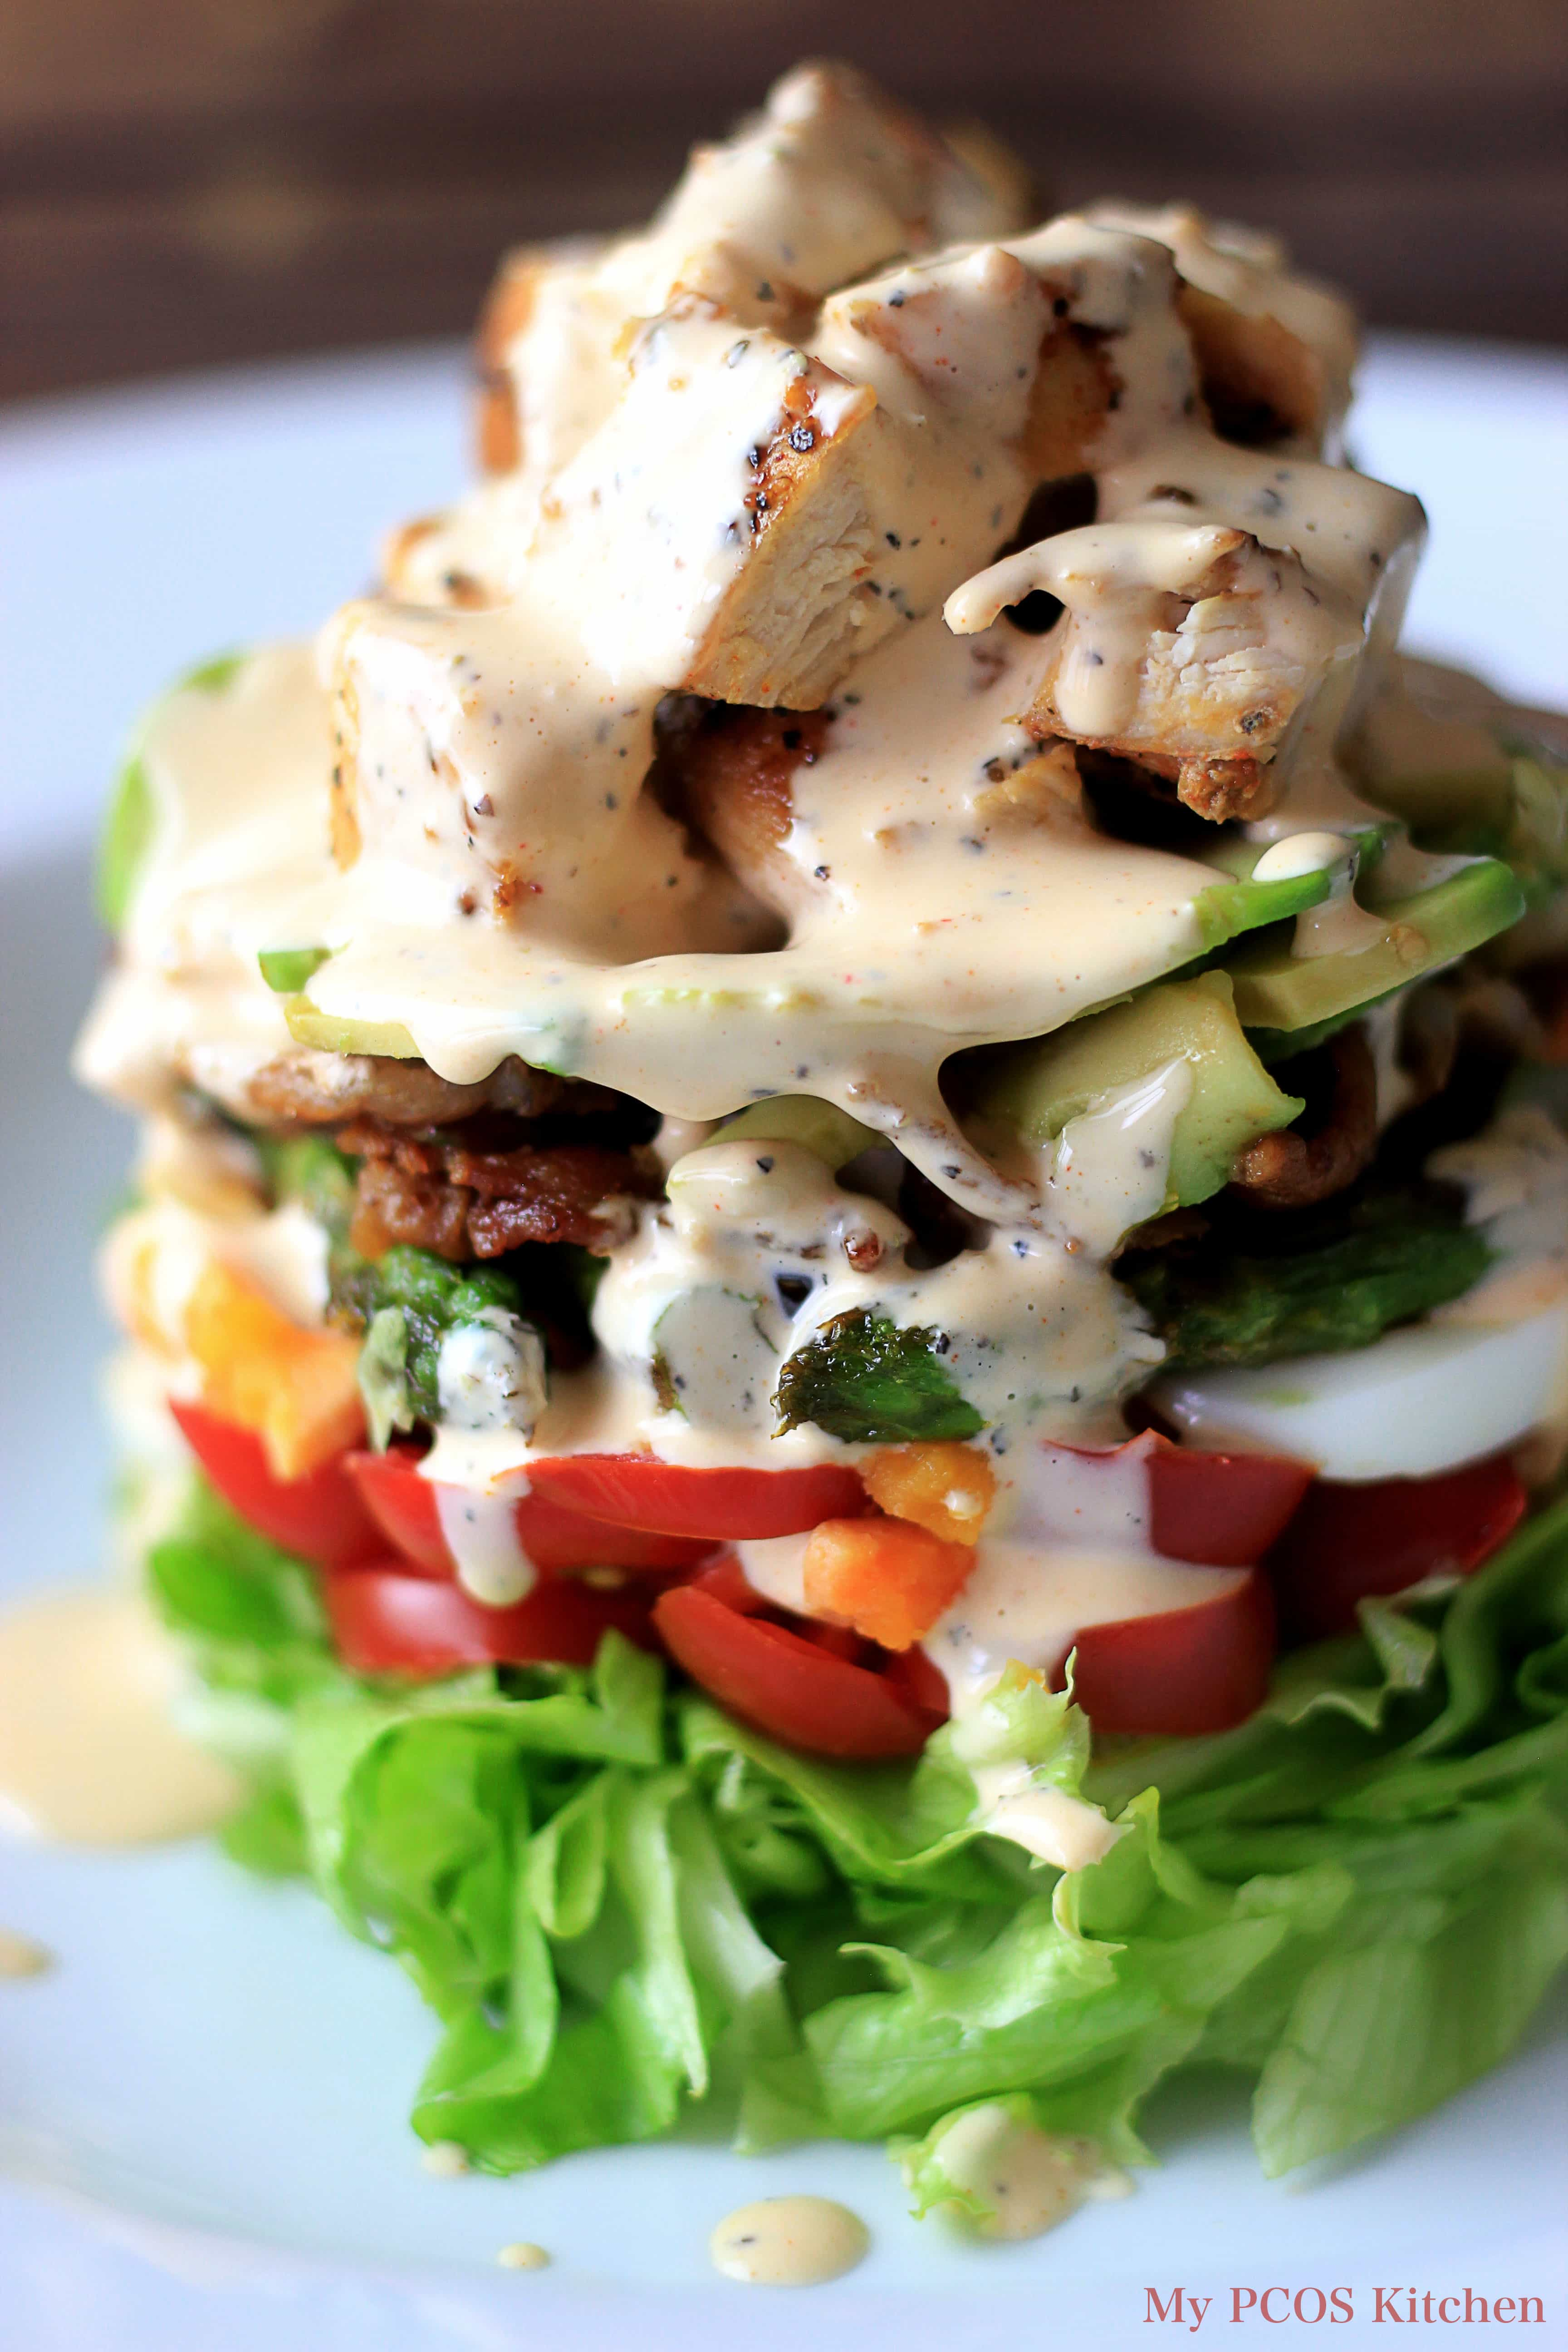 Paleo Cobb Salad with a Buffalo Ranch Dressing. The salad is low carb, low calorie, gluten-free and dairy-free. LCHF.